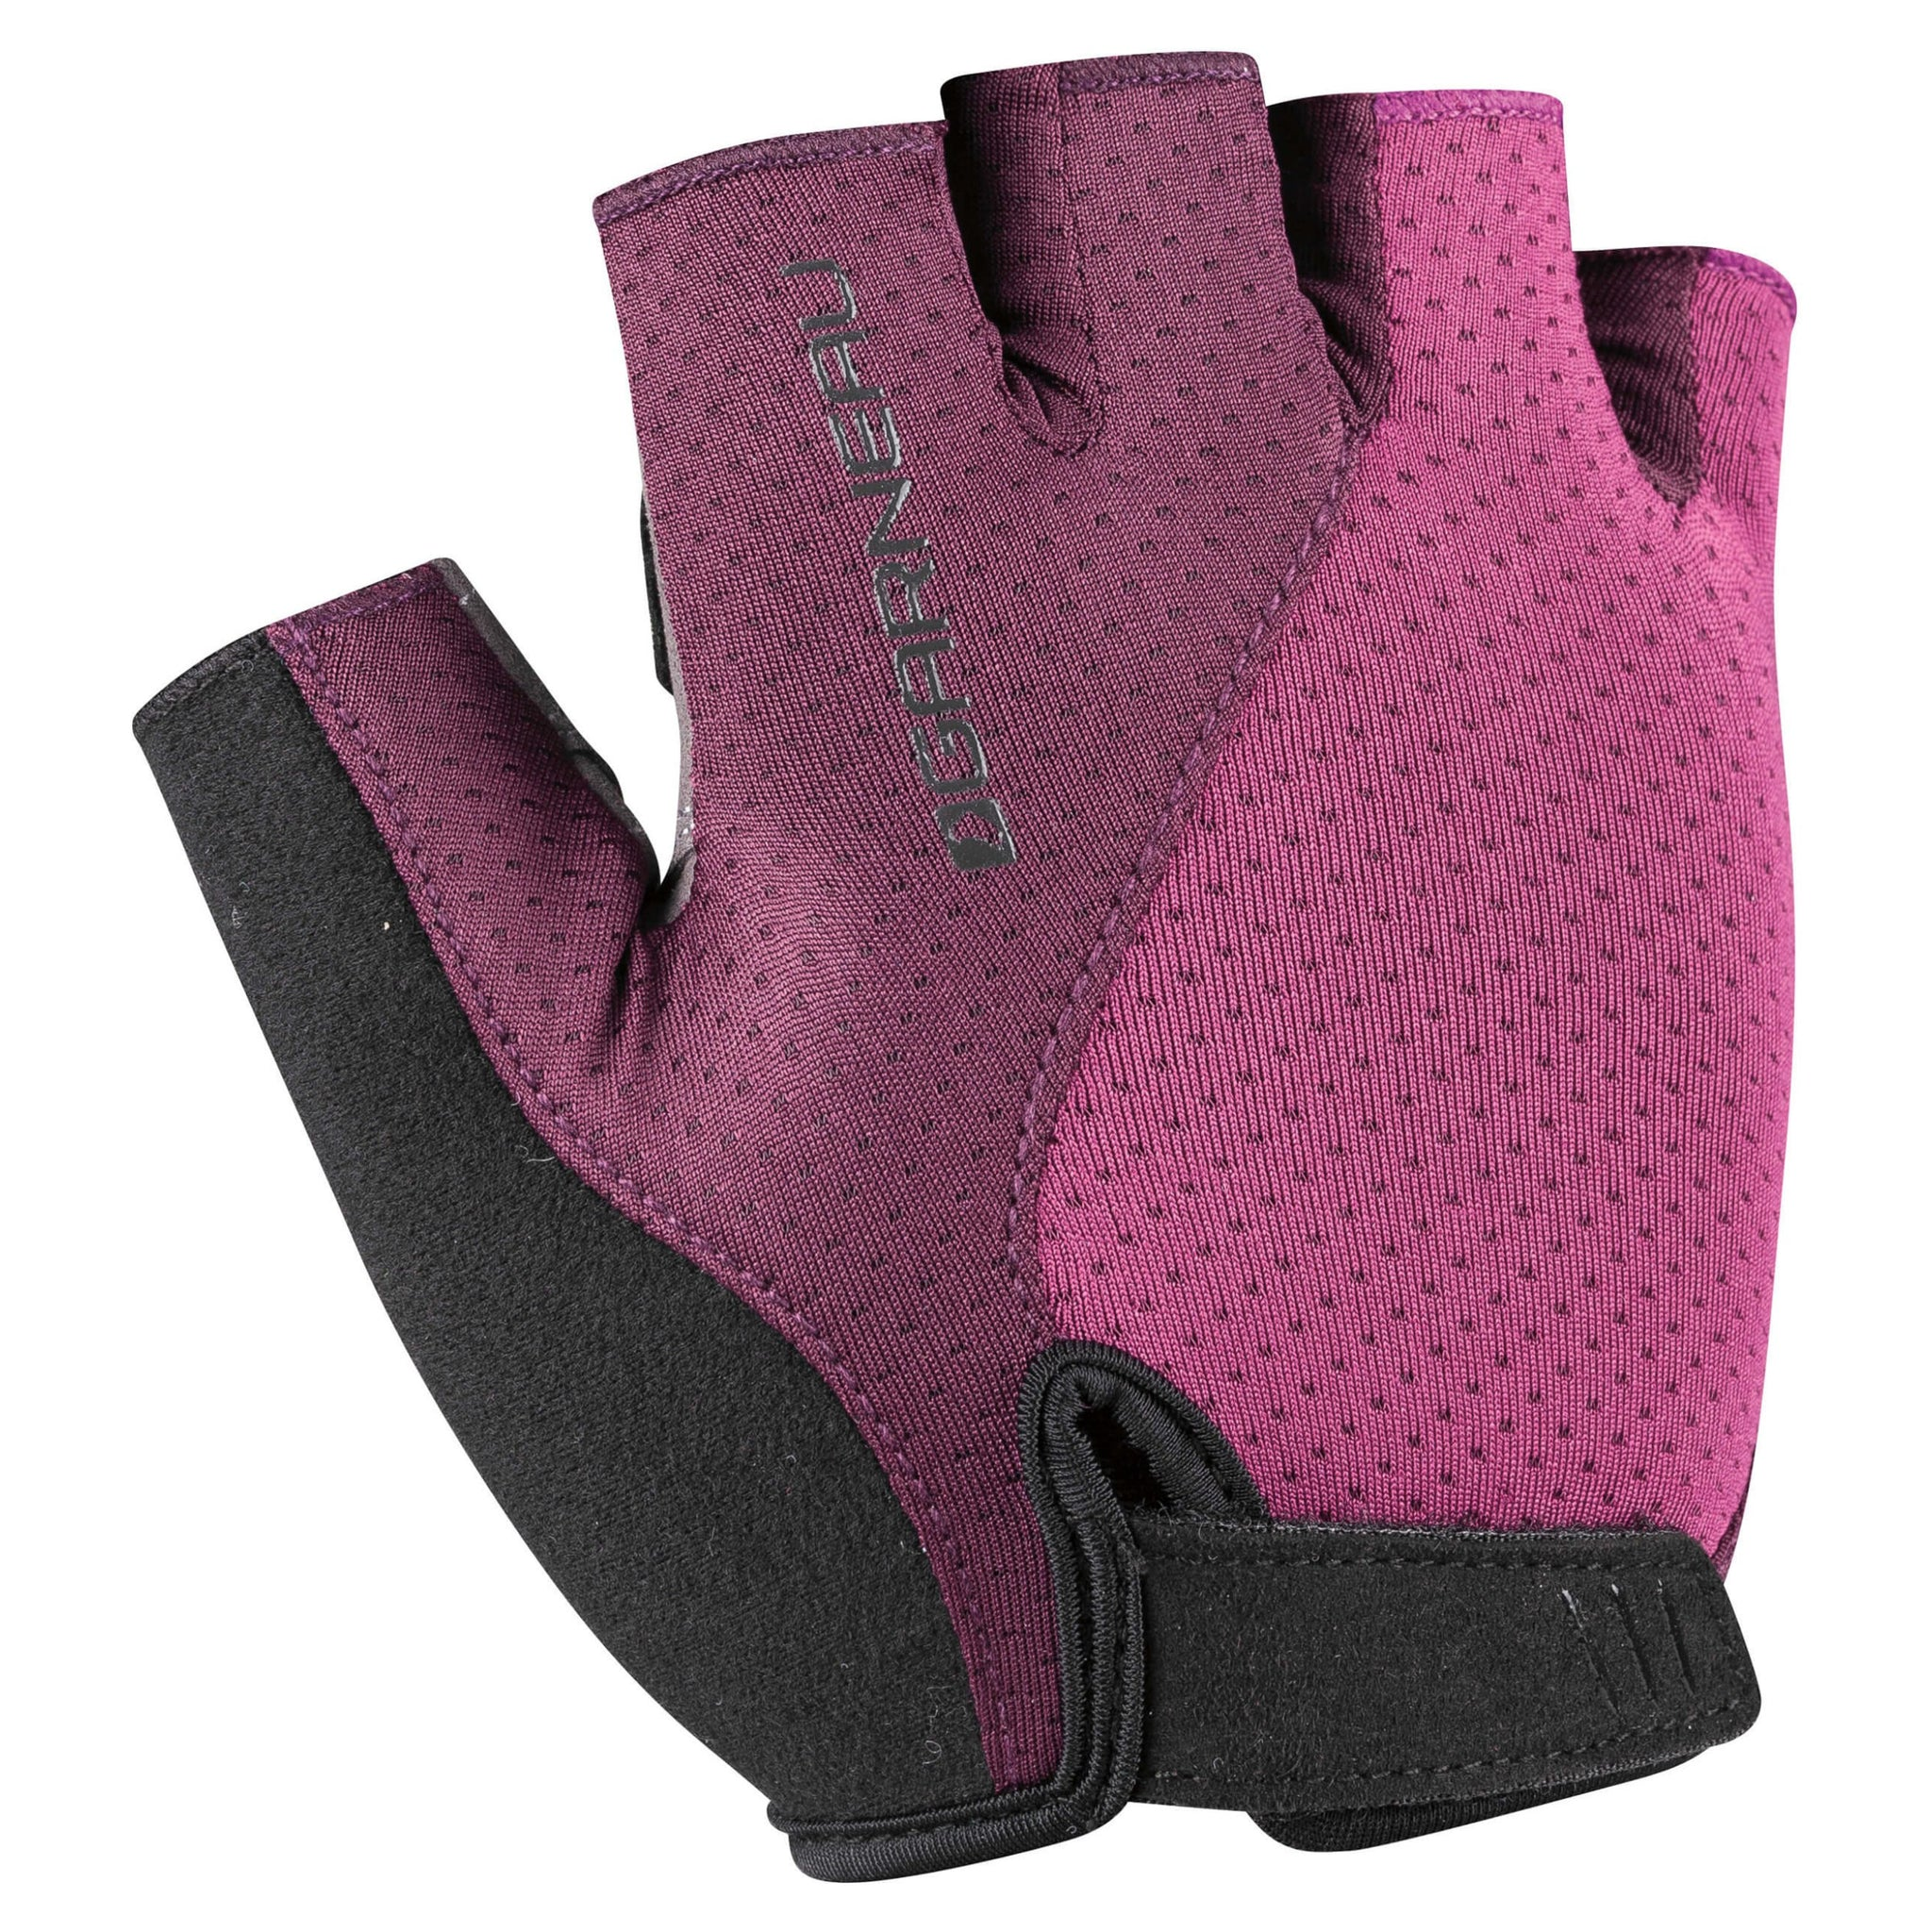 Sugoi Zap Adult Training Glove